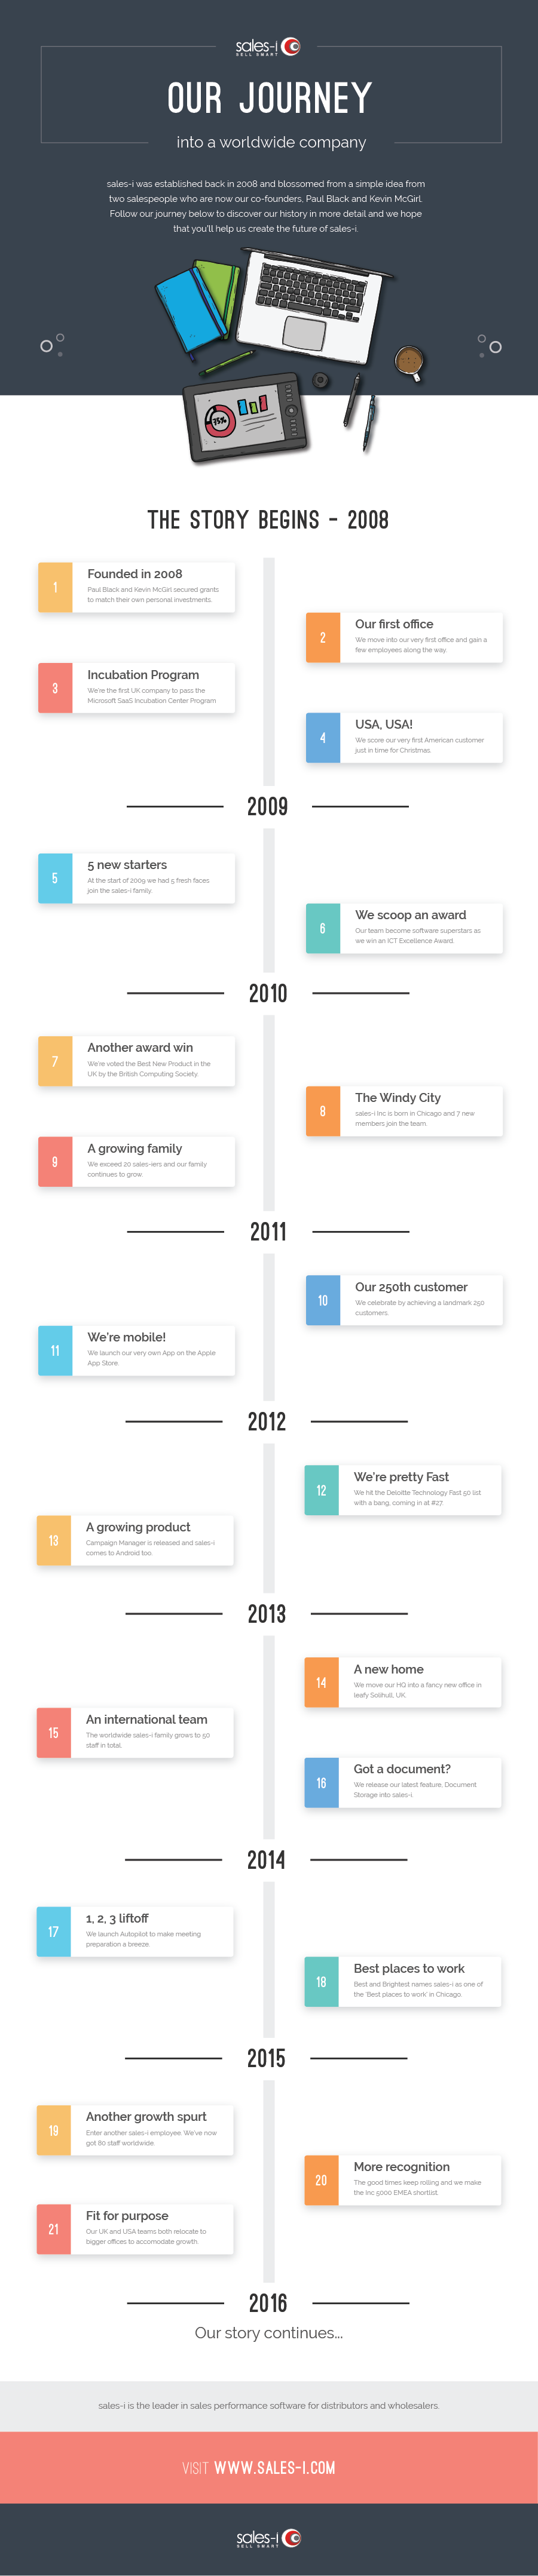 Infographic: sales-i story